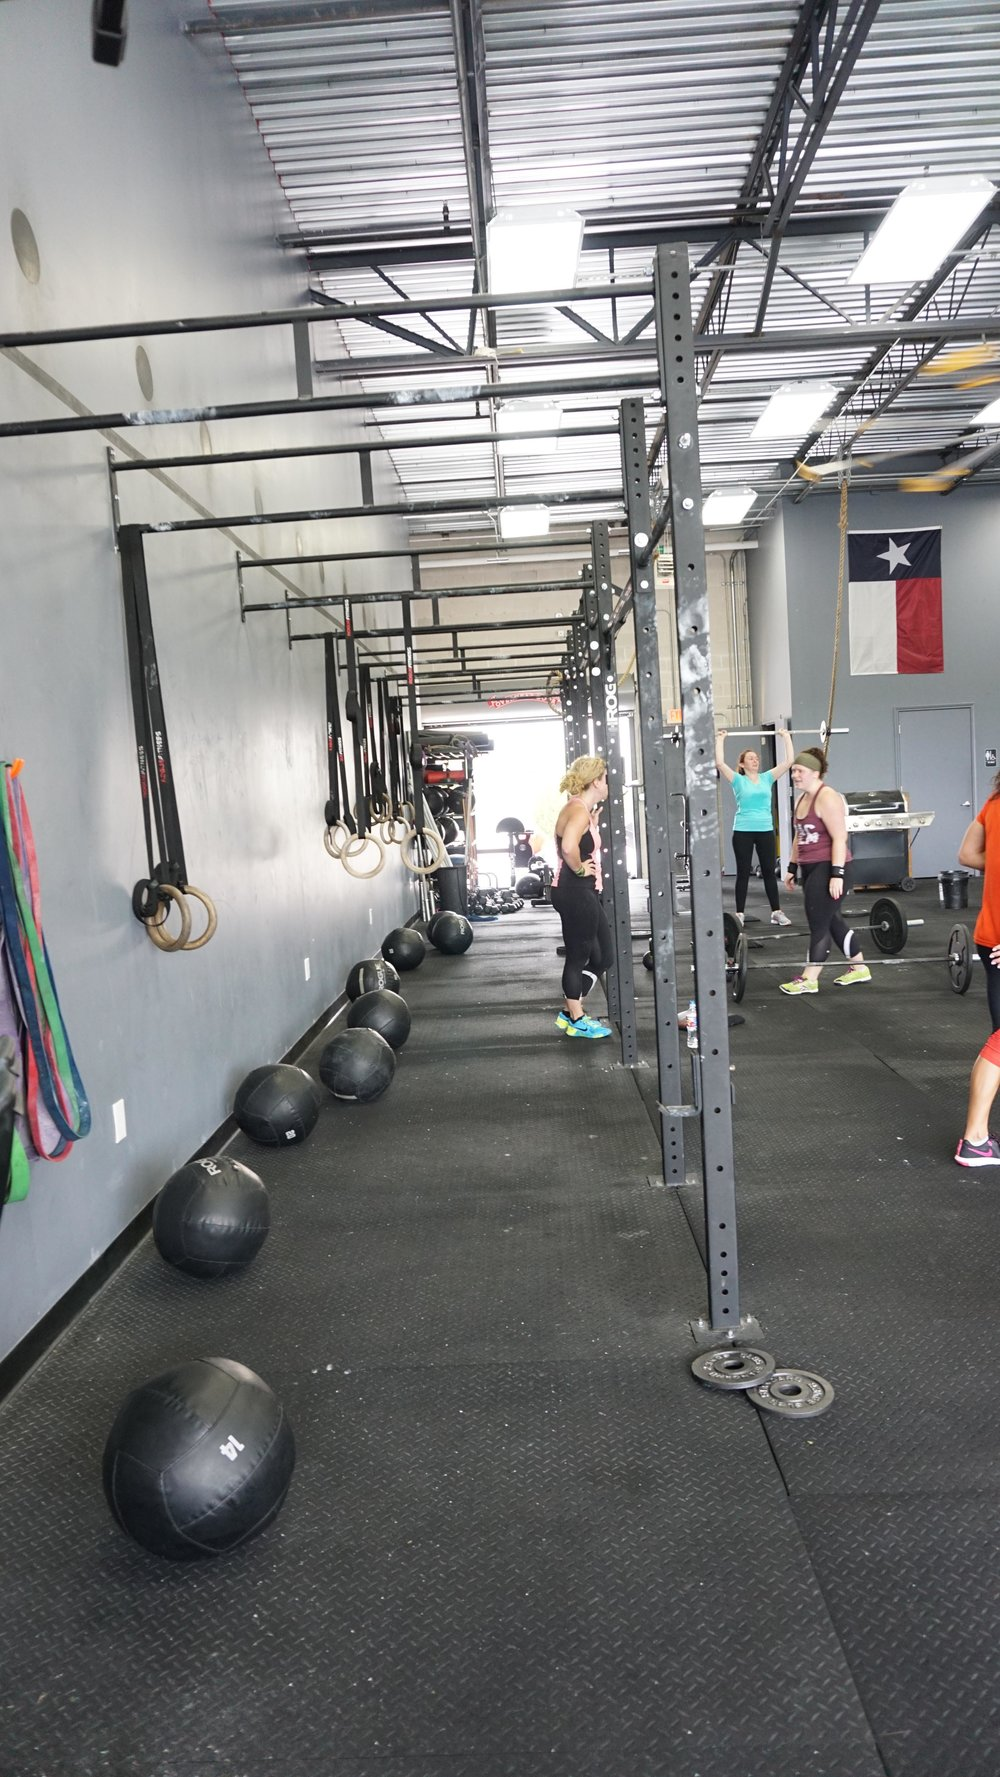 Crossfit - I freaking loved this workout! First work out is free!Strong Austin Ranch